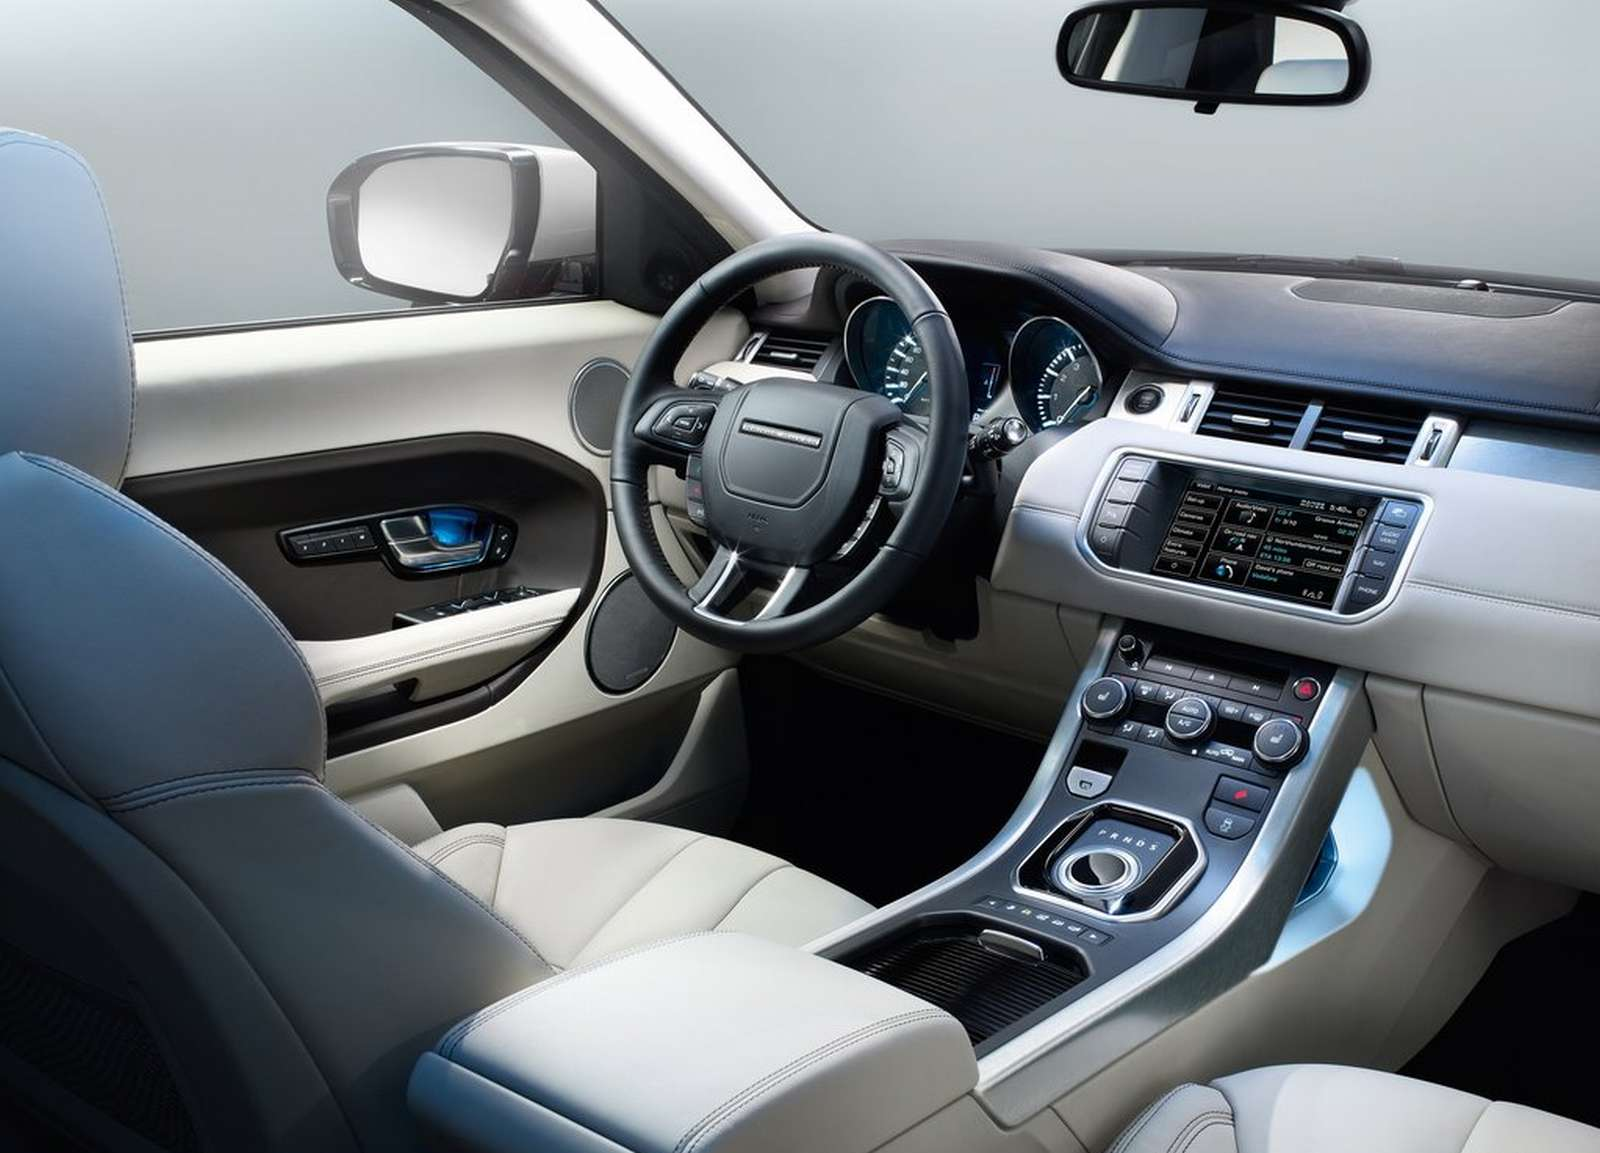 Automotivegeneral 2019 Range Rover Evoque Interior Wallpapers